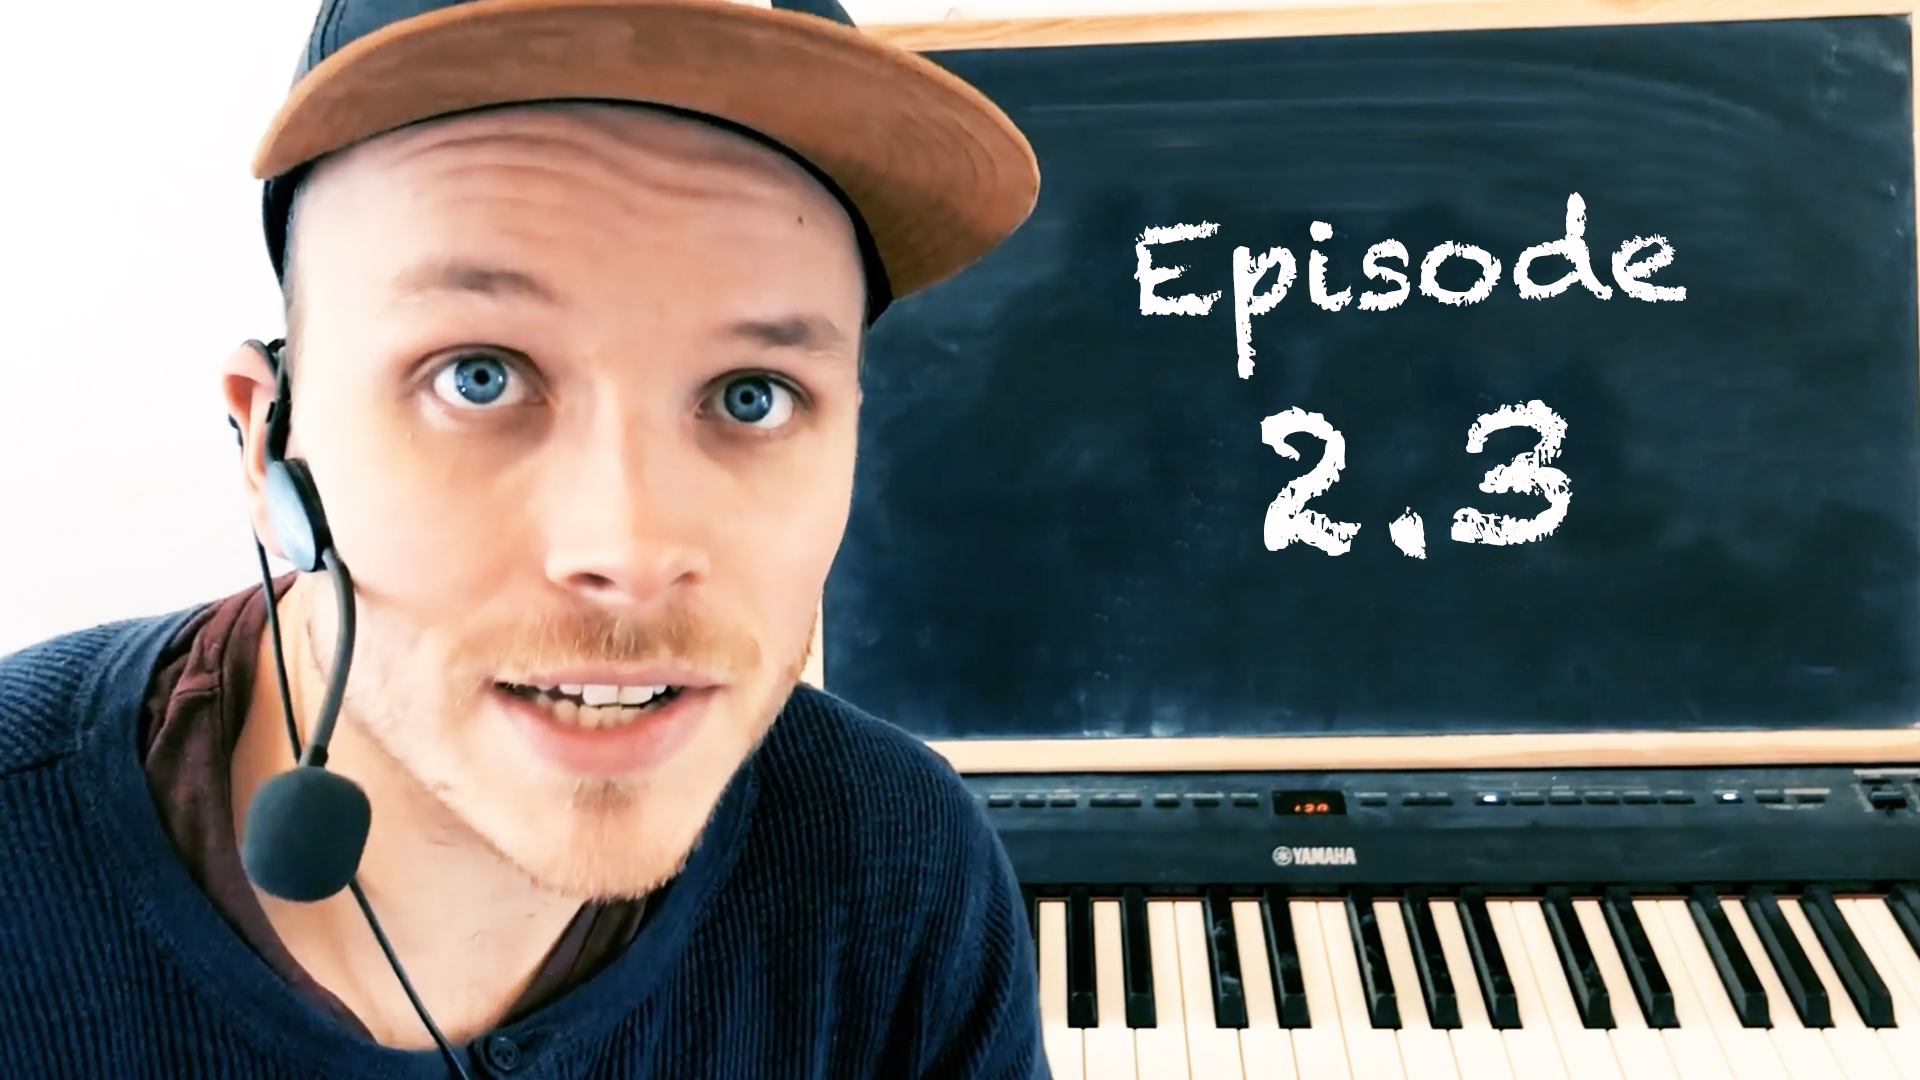 Ep 2. 3 Piano Pedals Explained